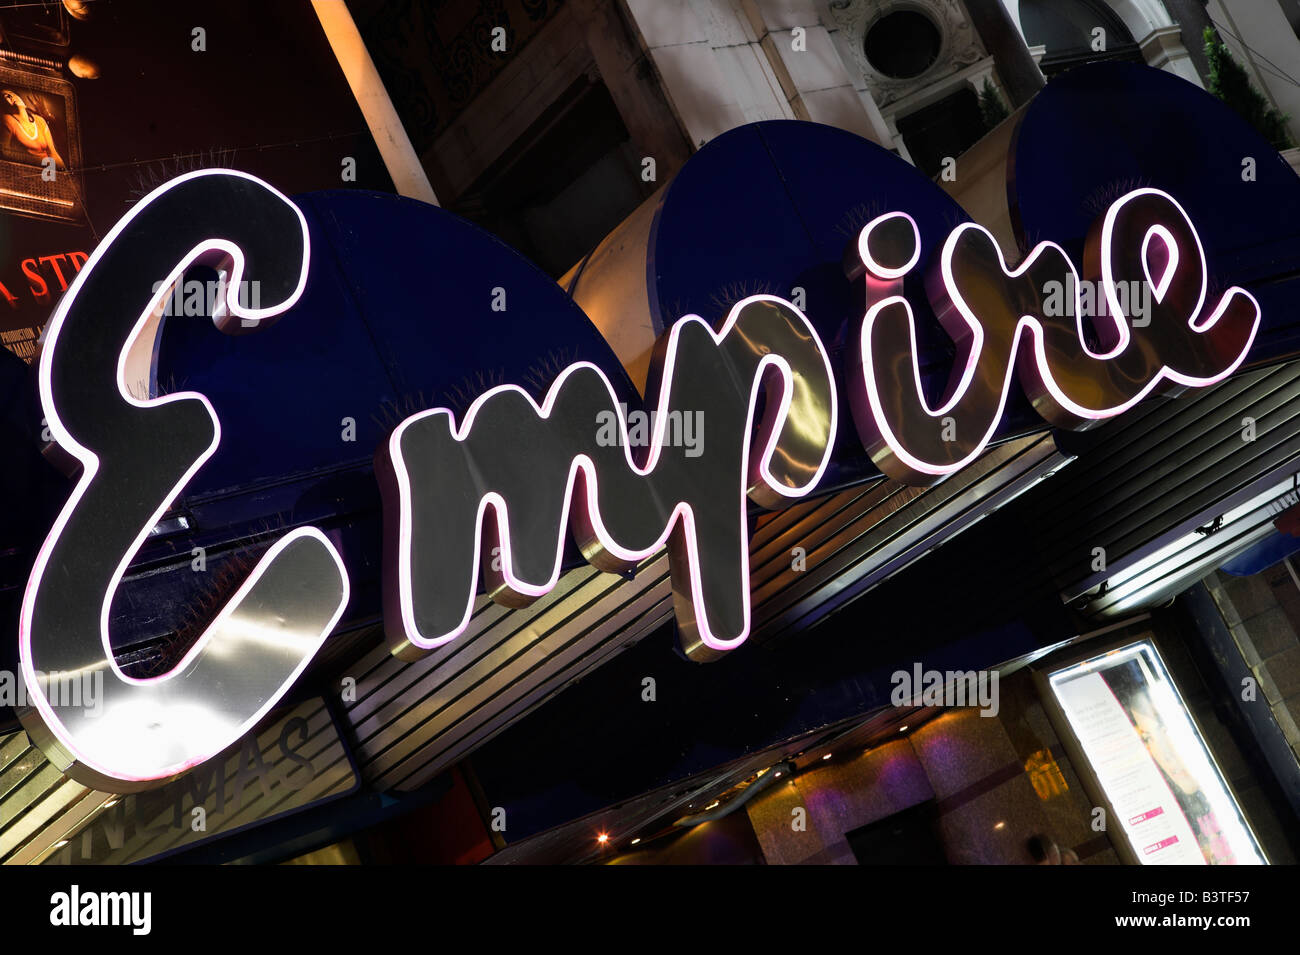 England, London, Leicester Square. The Empire cinema in Leicester Square, the heart of the West End. - Stock Image